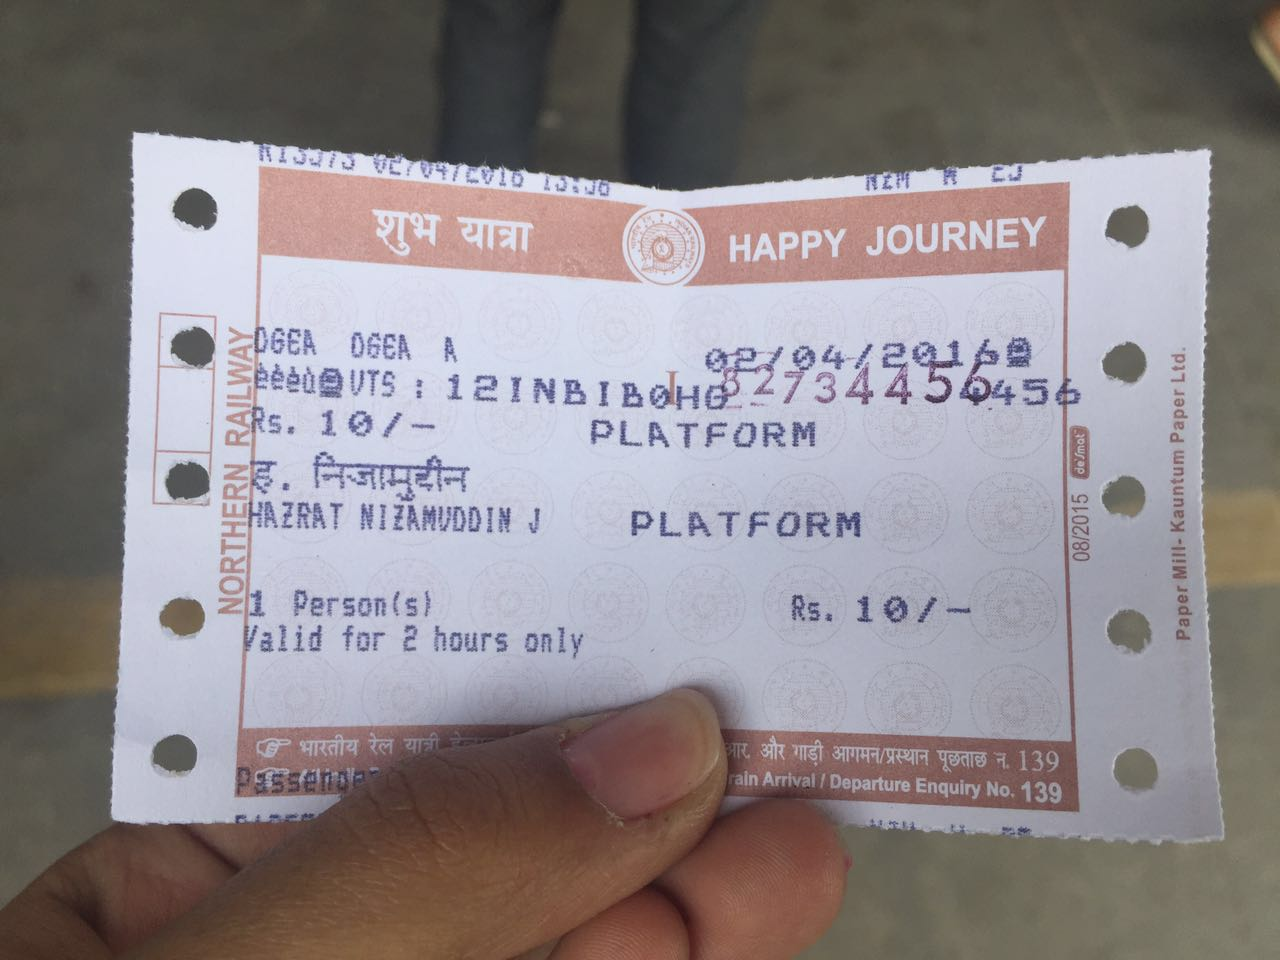 Indian Railways allows you to board a train with a platform ticket provided you have a guard's certificate: Here